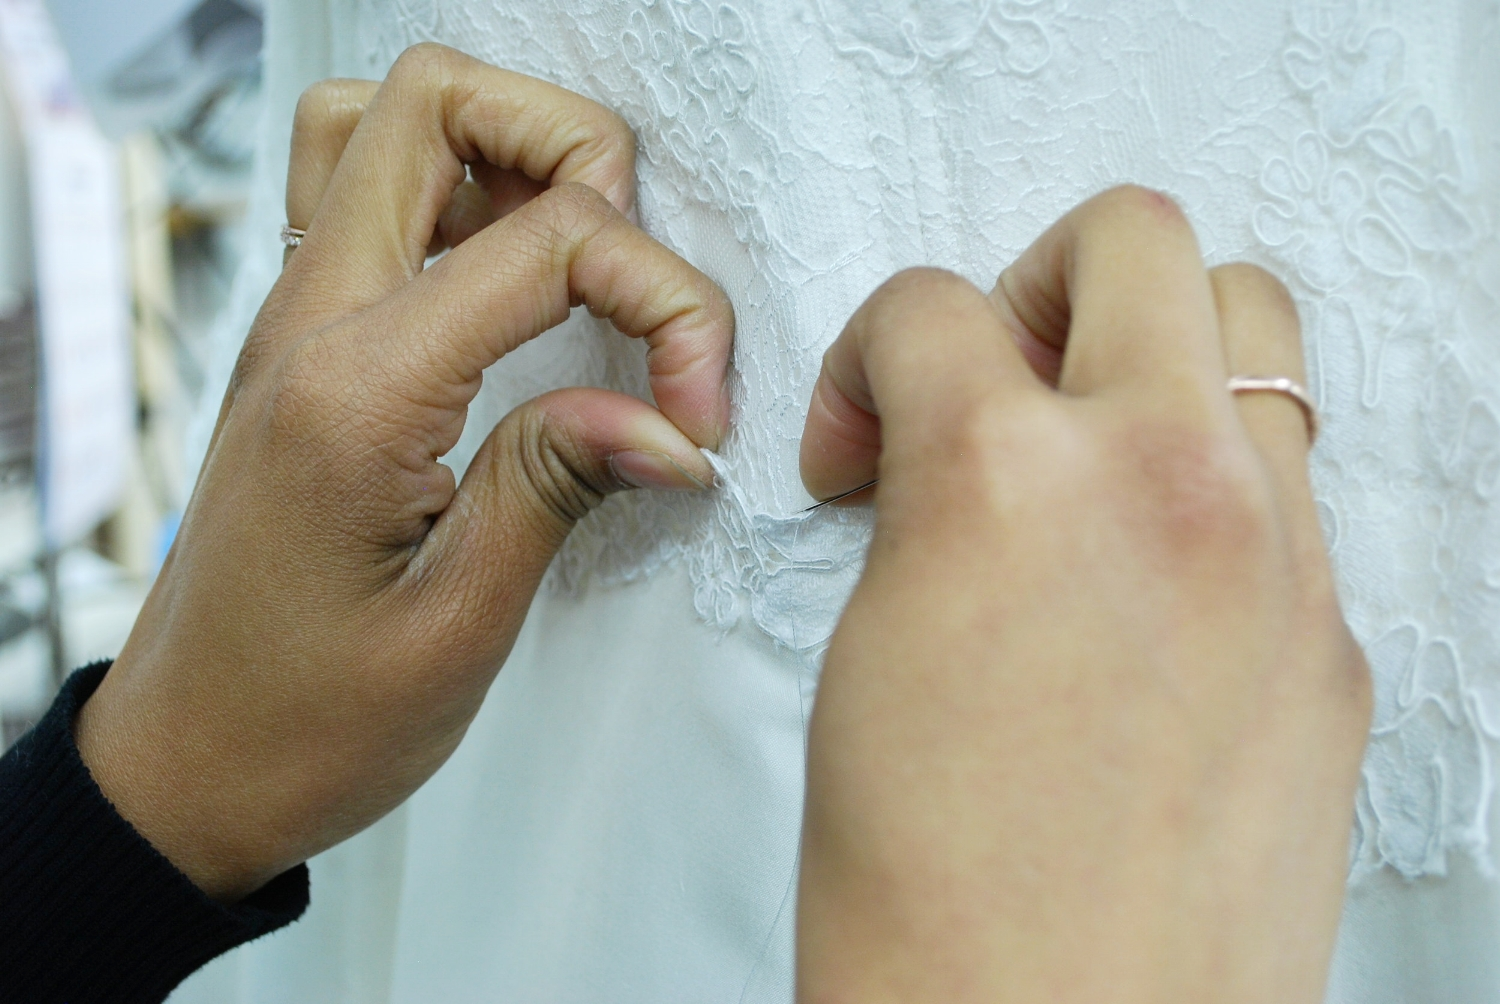 Hallak Cleaners provides couture services and repaired Brielle's wedding day imperfections and tears.